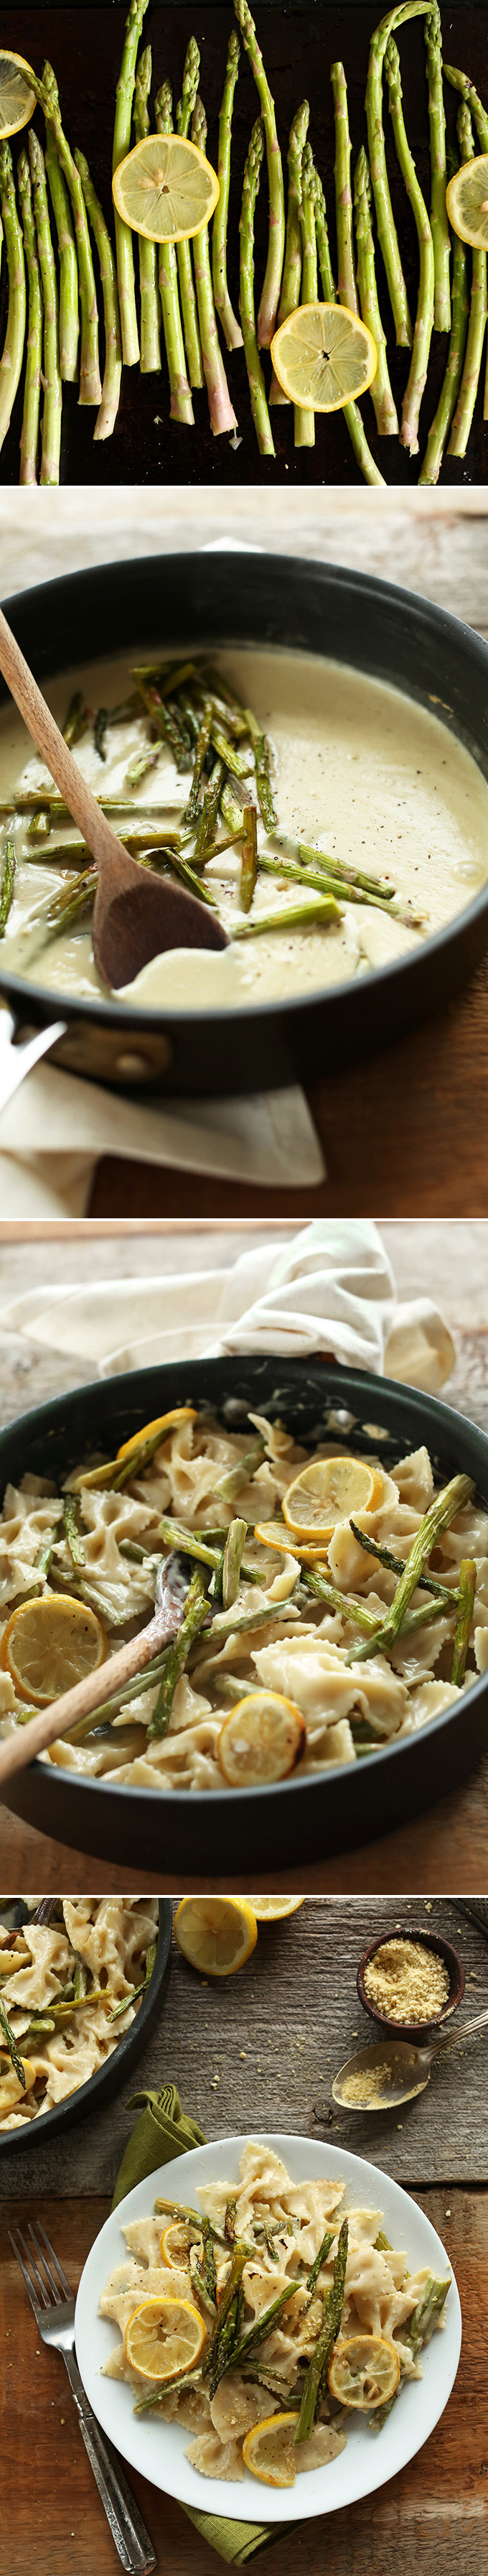 Series of photos showing how to make our Vegan Lemon Asparagus Pasta recipe